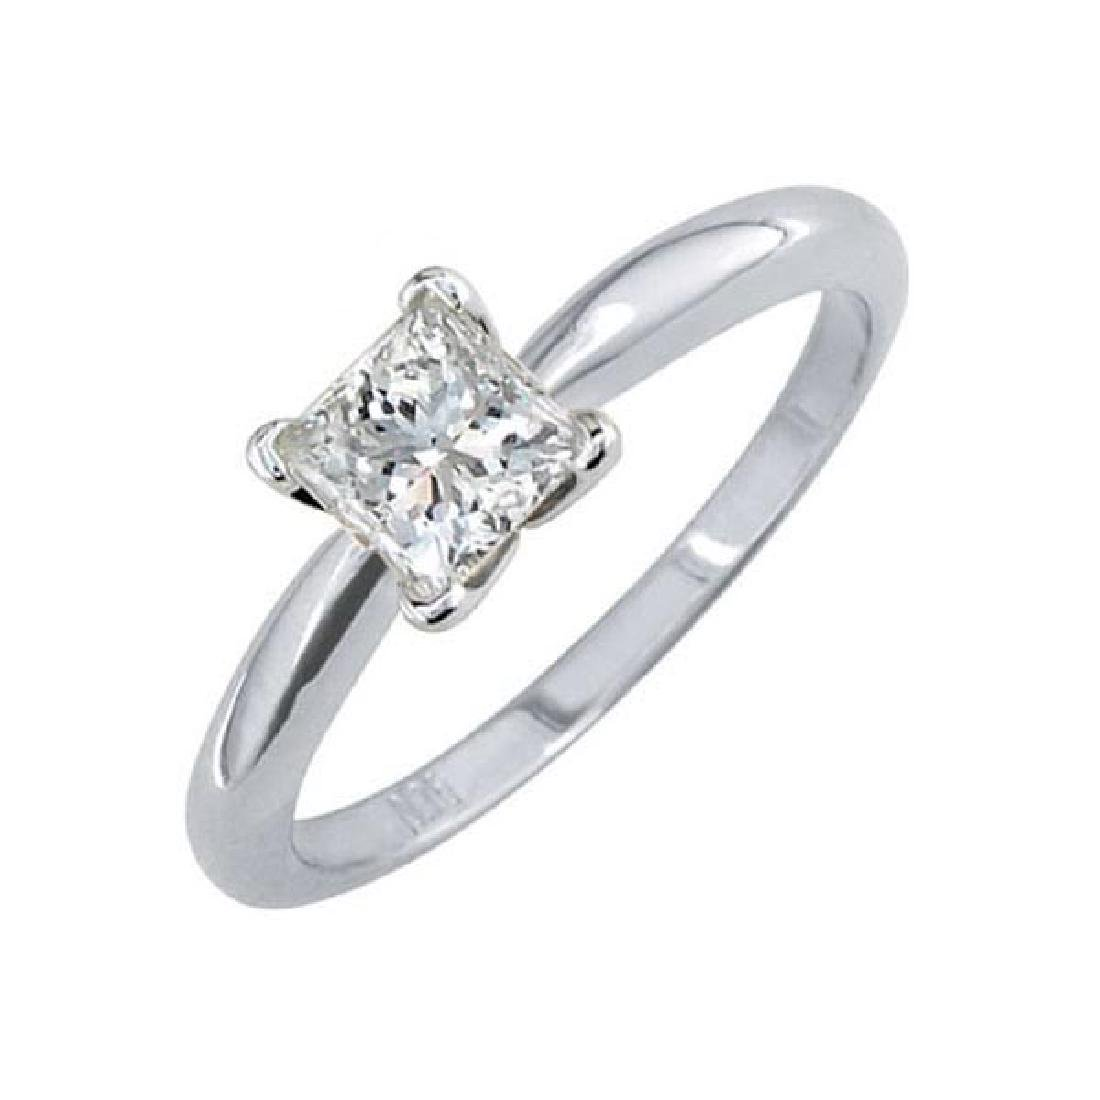 Certified 0.69 CTW Princess Diamond Solitaire 14k Ring